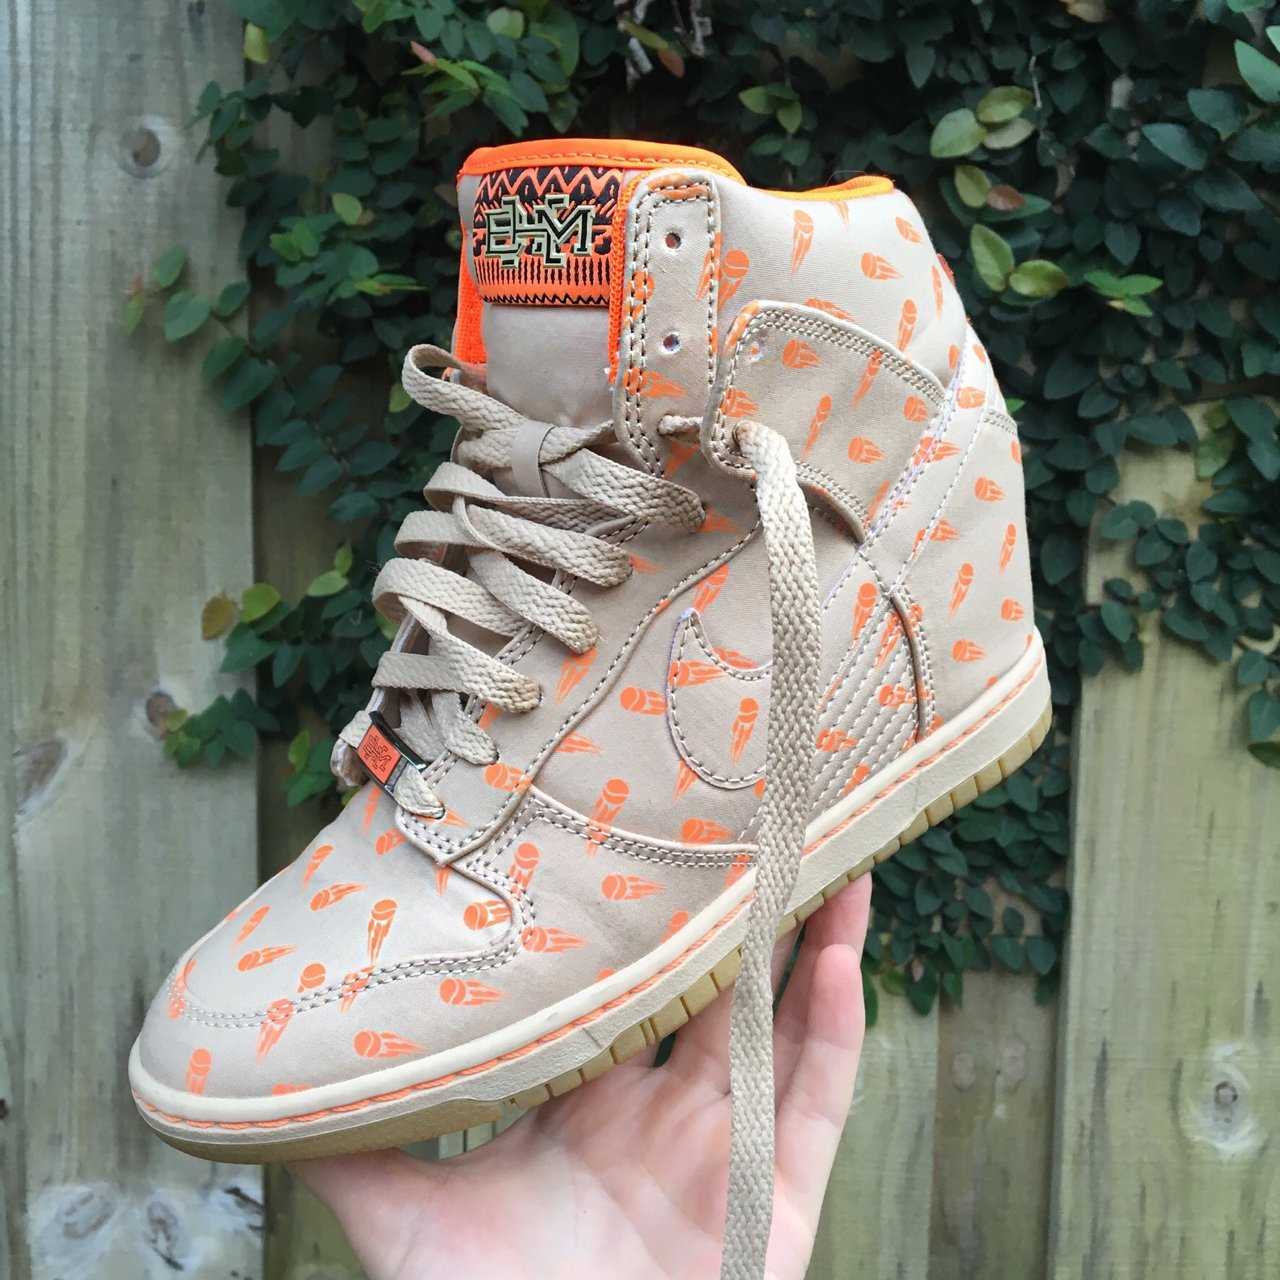 Women s Nike Dunk Sky Hi Black History Month QS. Absolutely - Depop 4b41f2ae2a